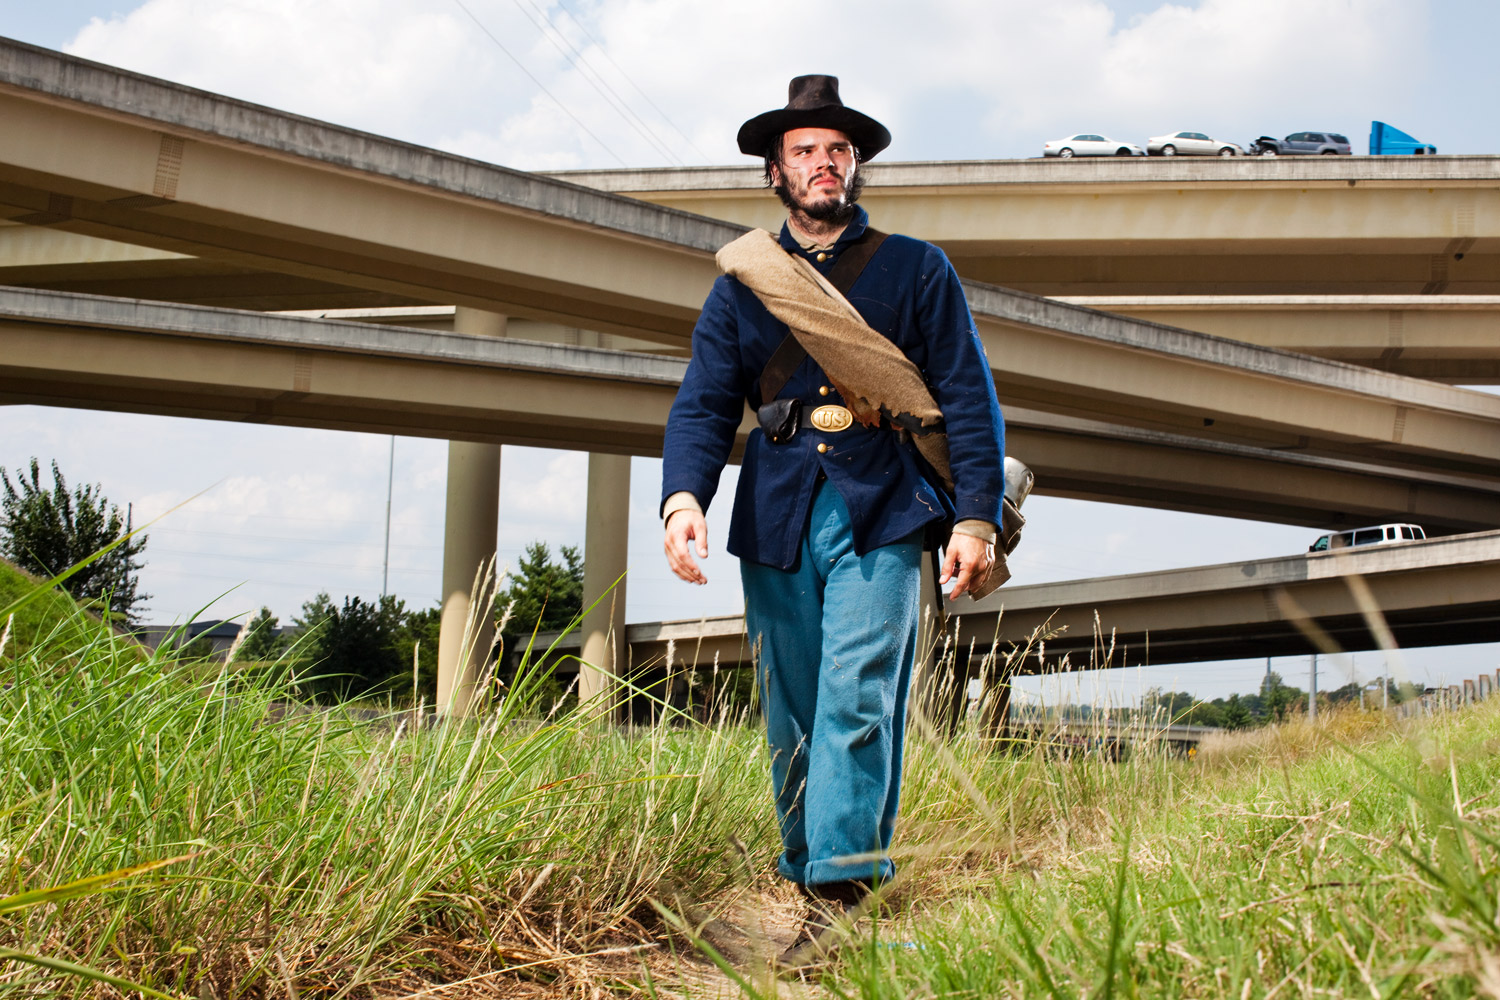 Nashville, Tn.                               Juston Pope walks on the site of the Nashville battlefield, only 1% of which is officially protected.